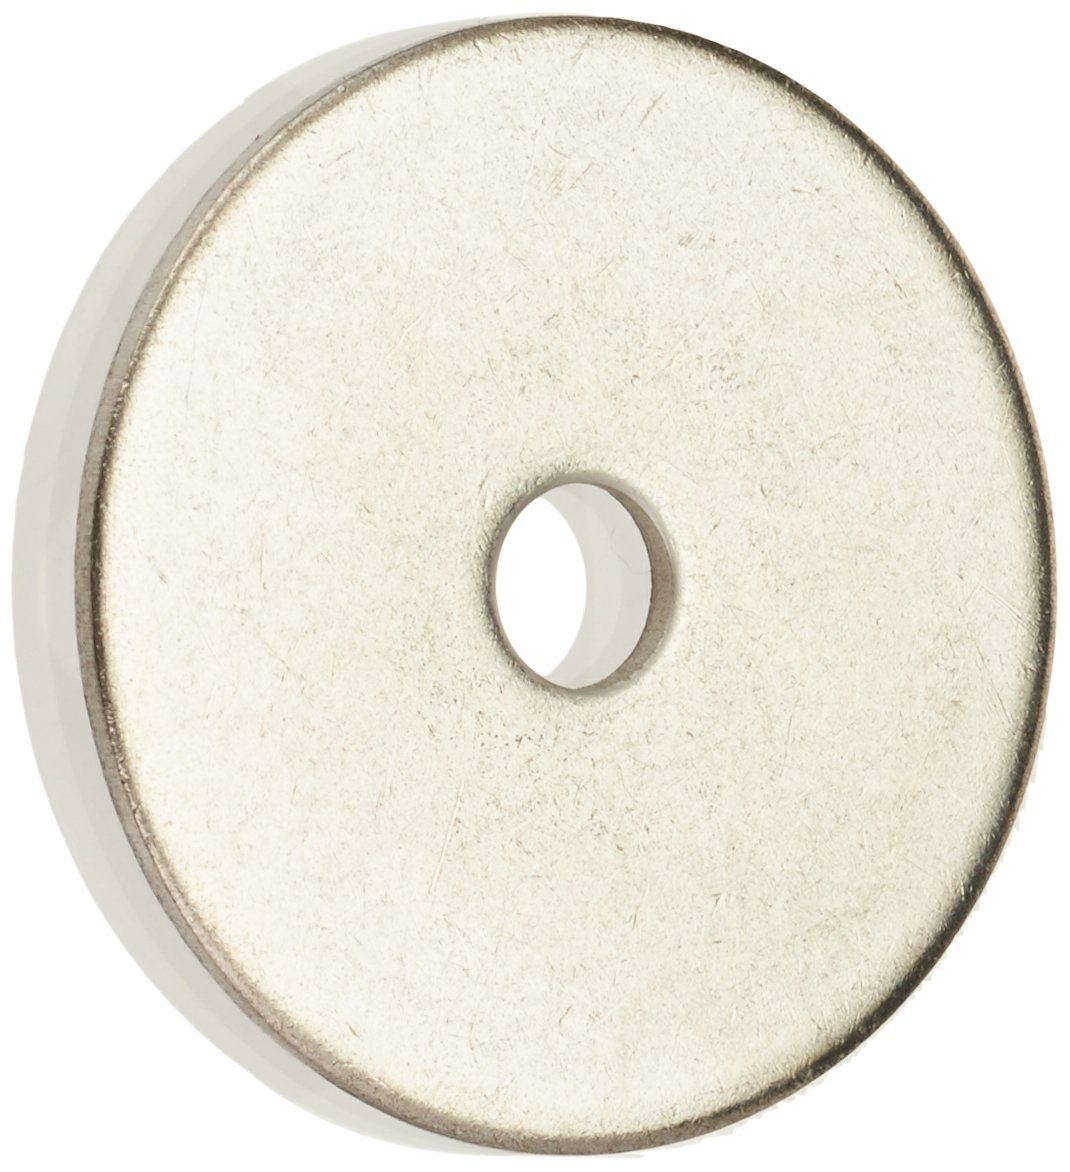 The Hillman Group 830606 Stainless Steel 3/16 x 1-1/4-Inch Fender Washer, 100-Pack